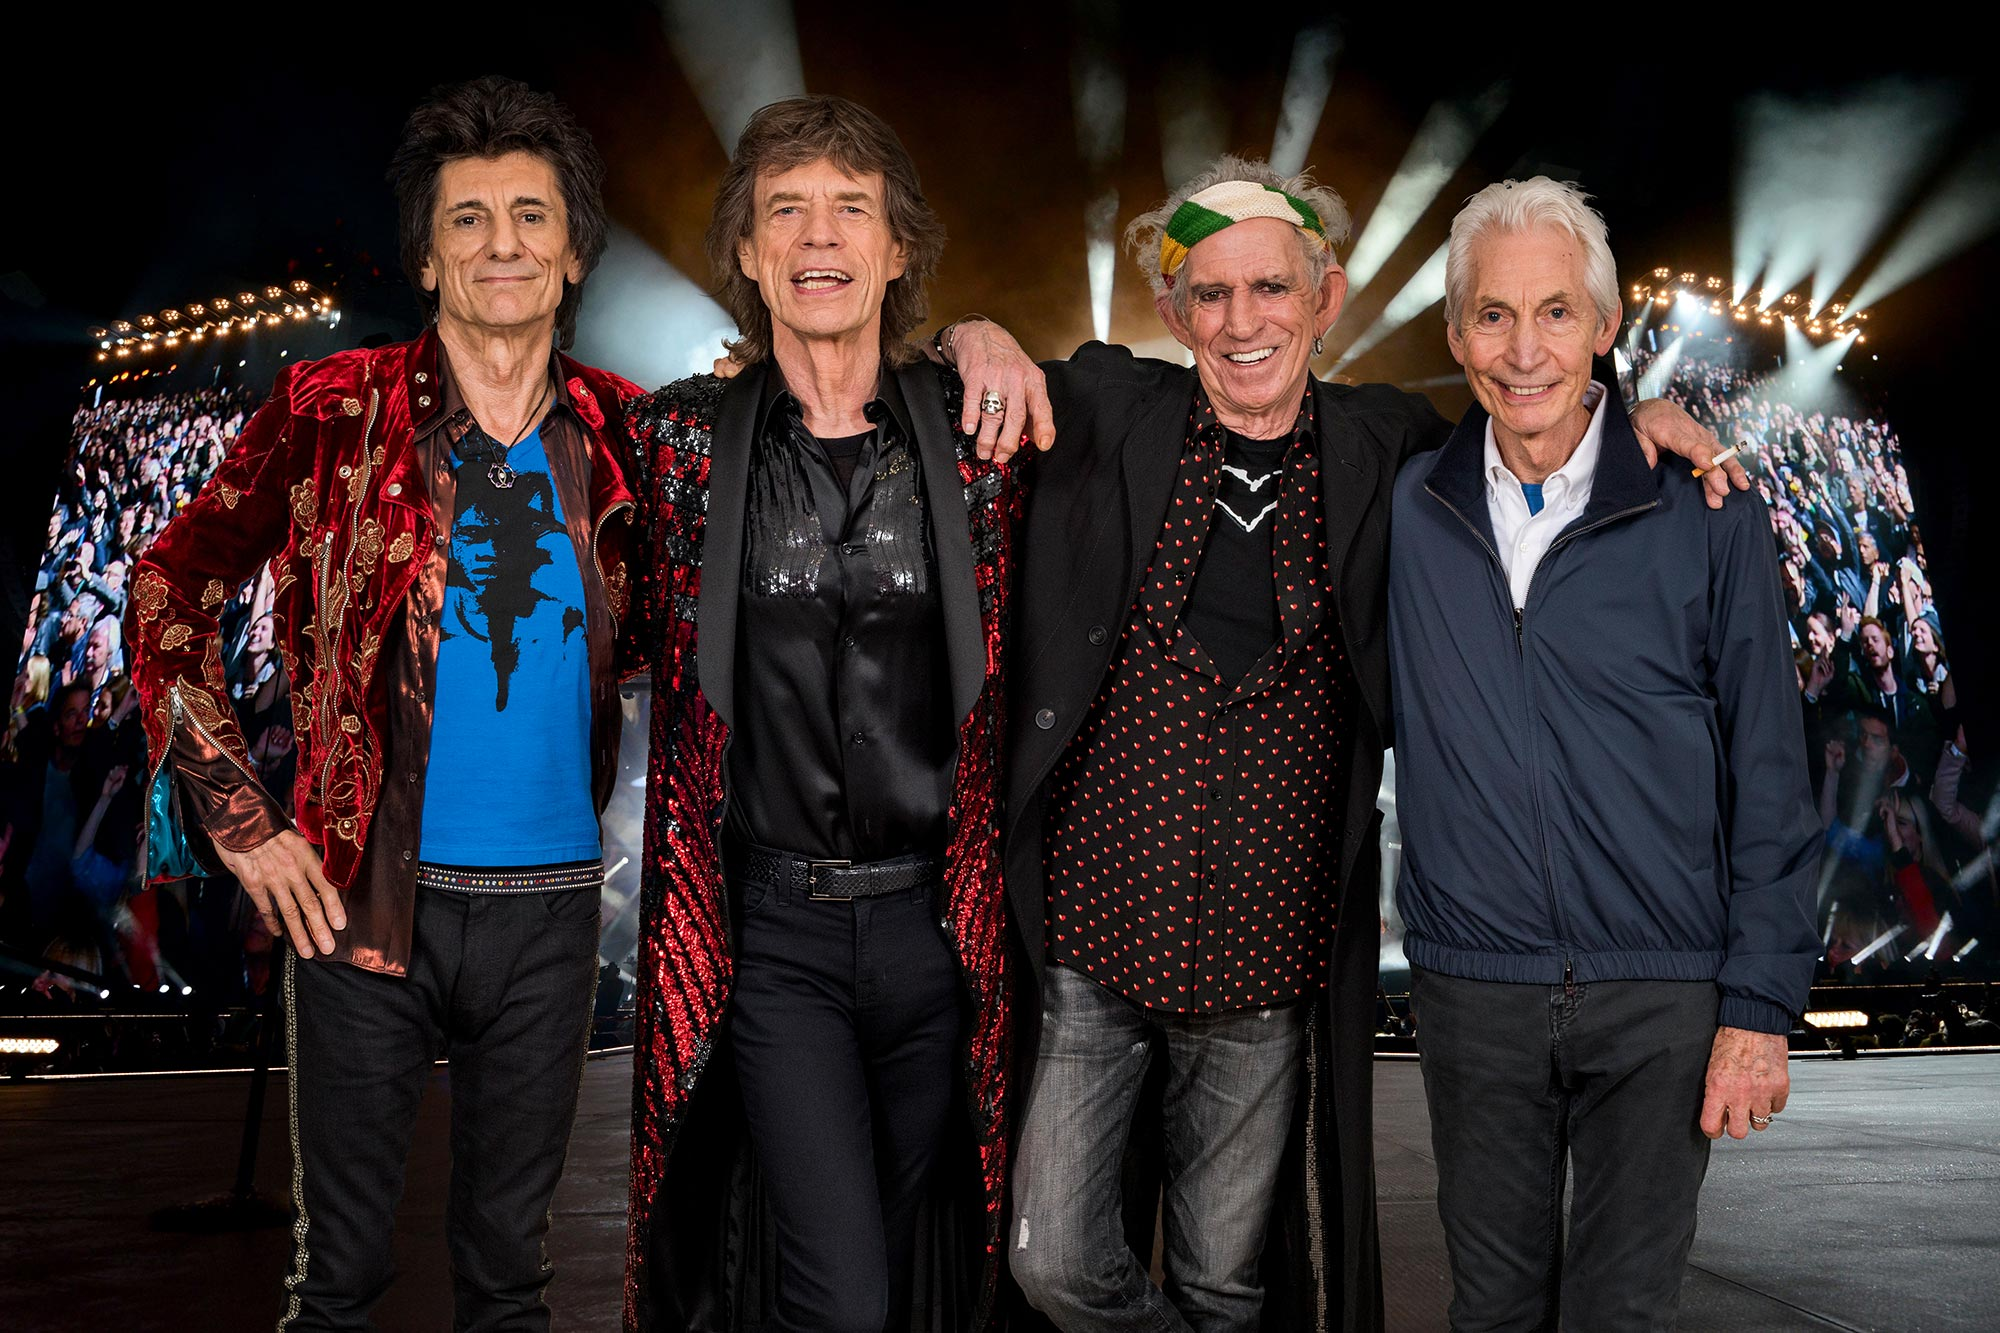 The Rolling Stones 2021 tour photo